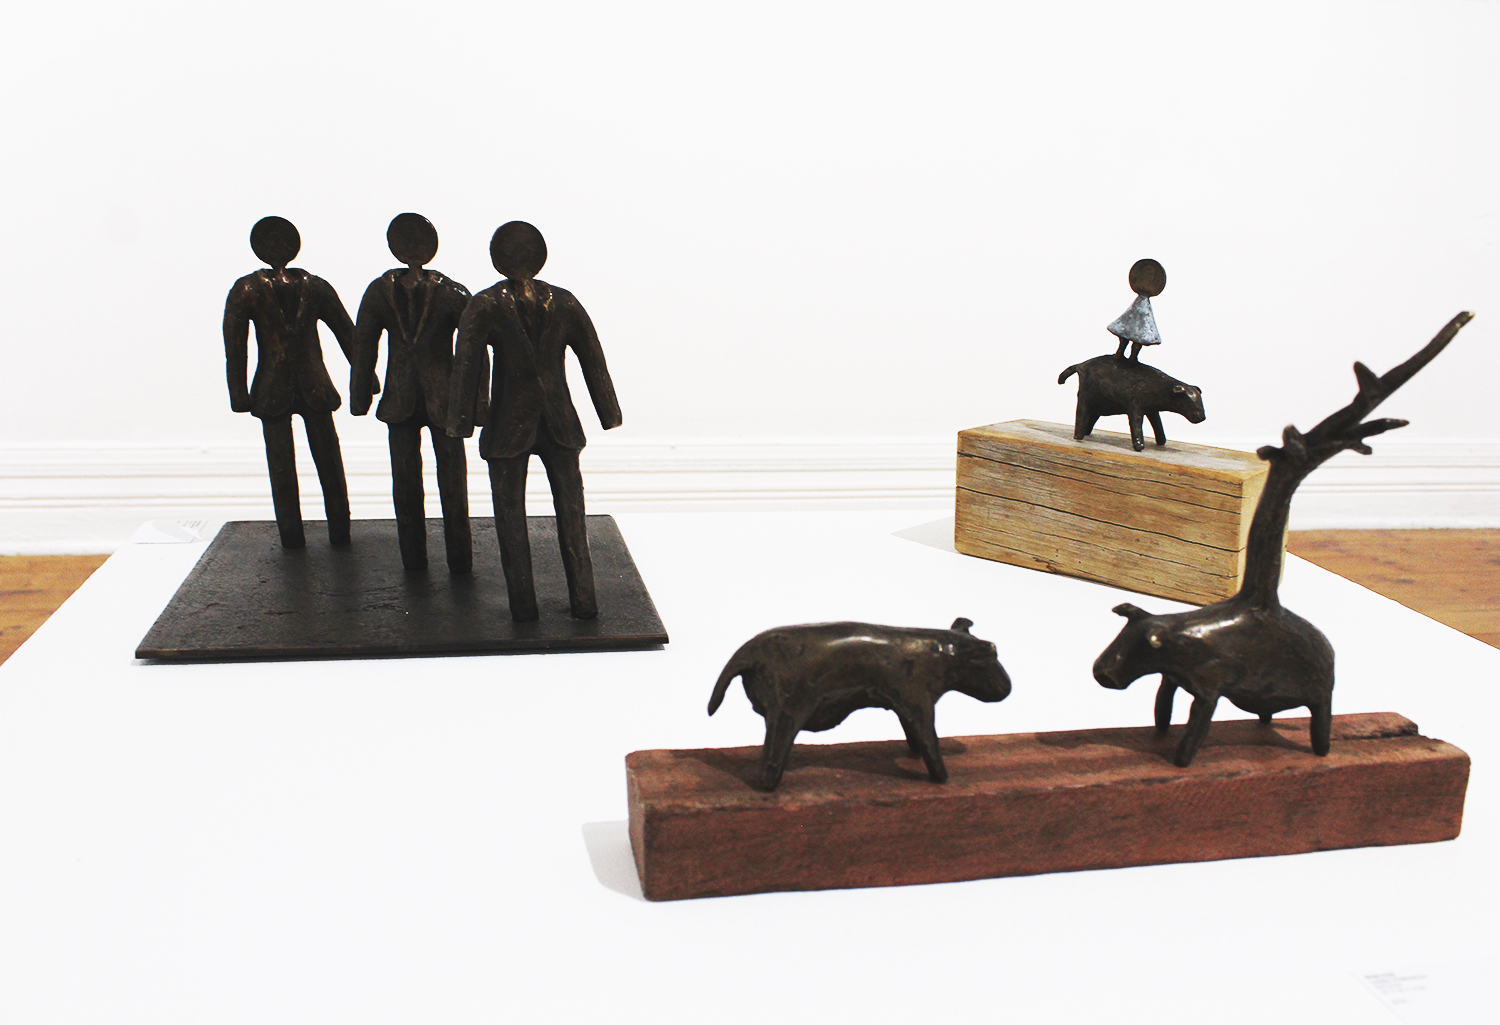 From left to right: Dawn Robinson,  Shelter , bronze, 20x28x25;  The Paddock , Bronze, 30x30x25;  A Penny For Your Thoughts , Bronze, 20x20x25